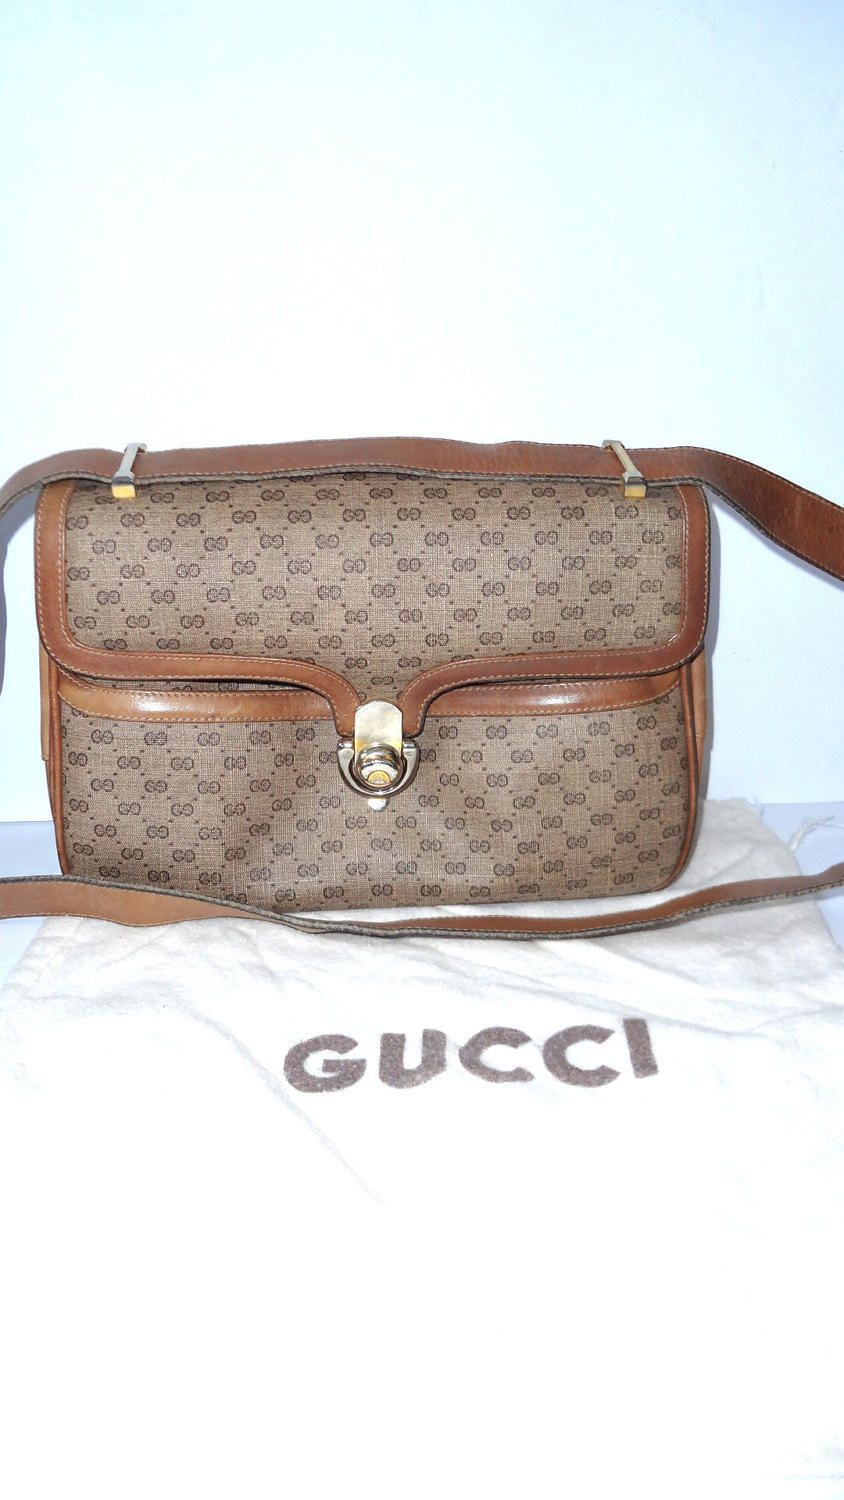 Etsy Vintage Gucci Authentic Vintage Gucci Organizing Handbag Micro Monogram Gg